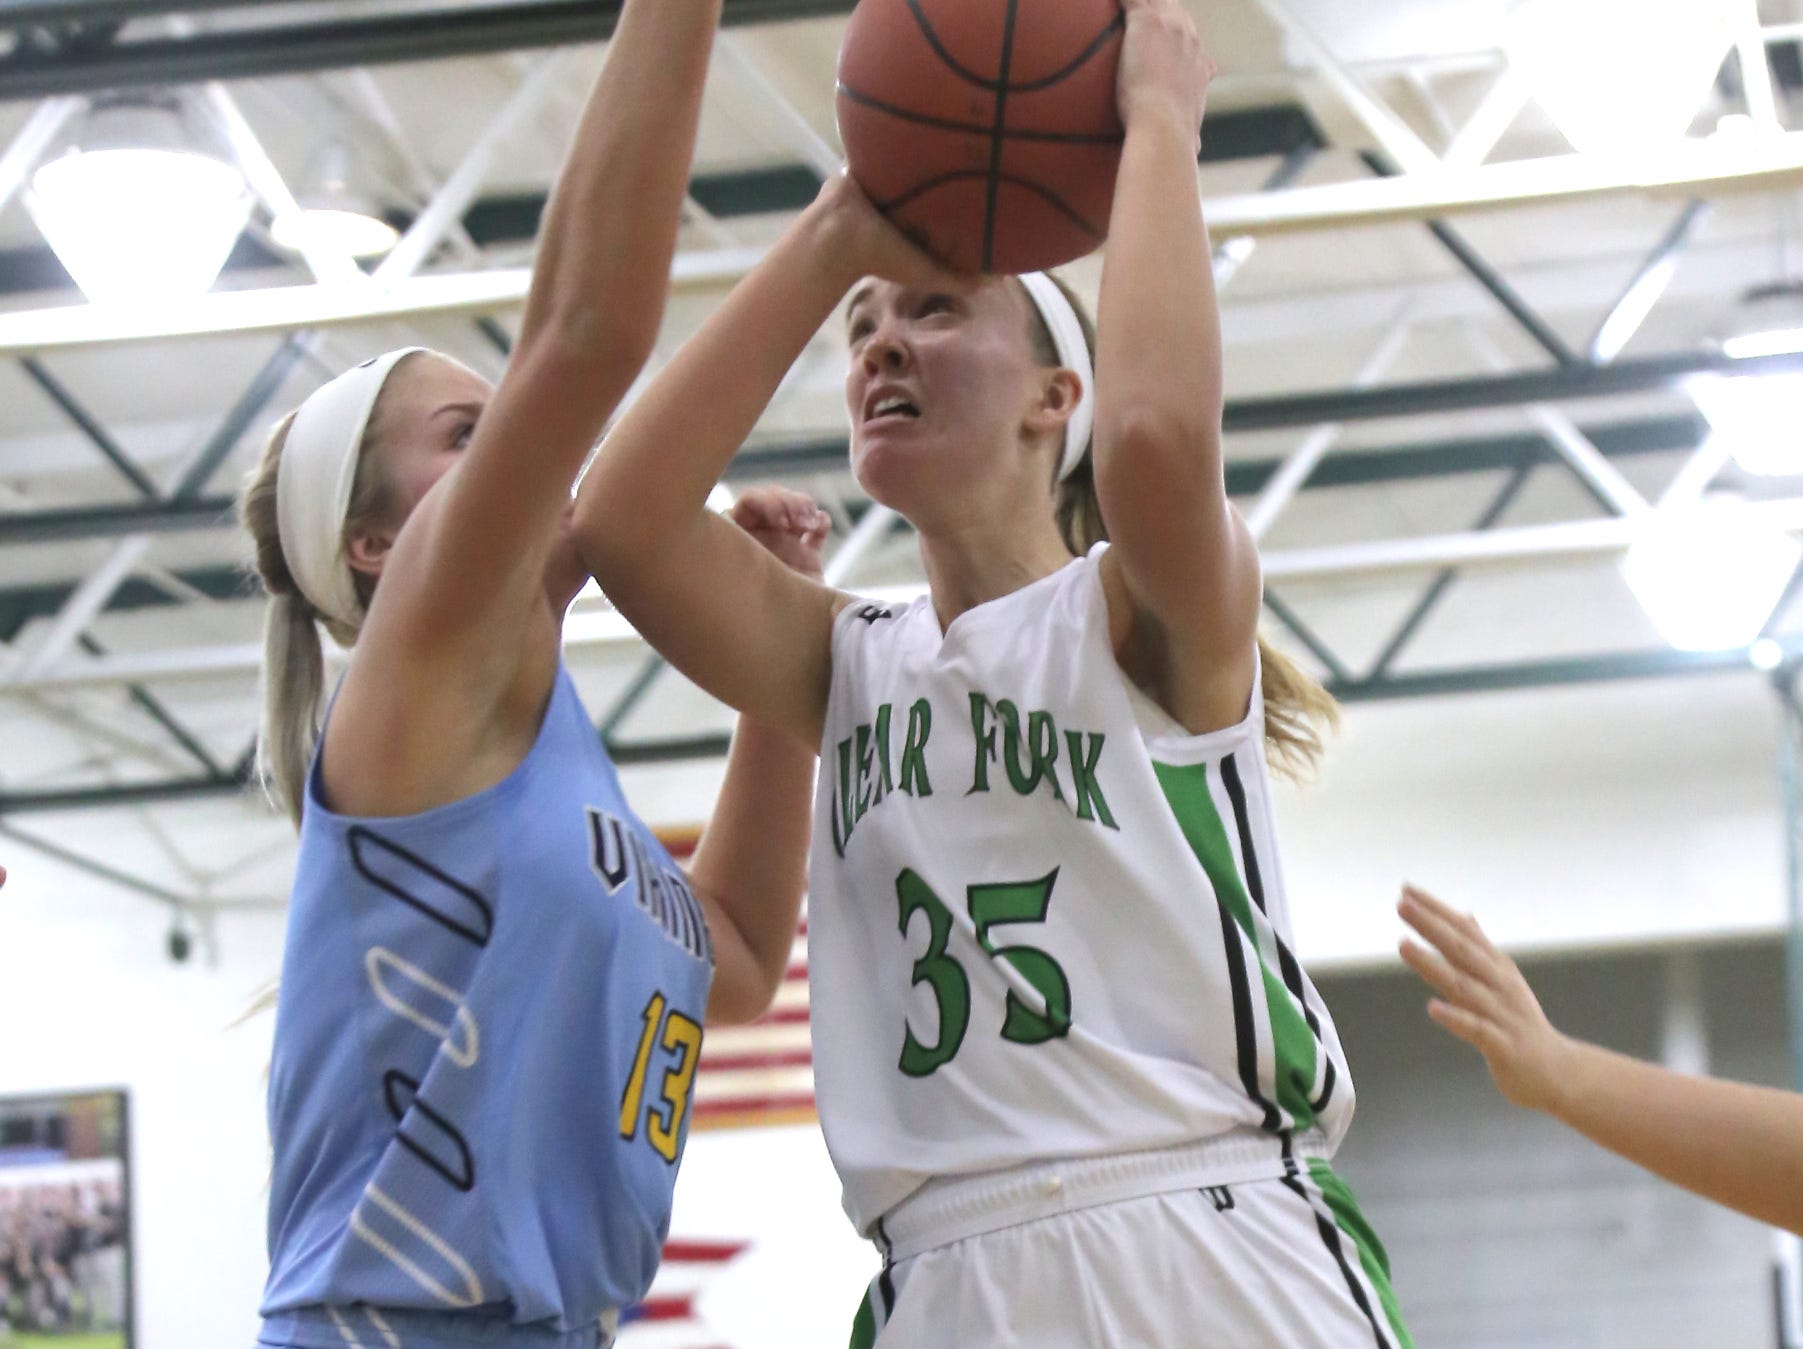 Clear Fork's Alli Studenmund attempts a shot against River Valley's Ally Johnson on Tuesday.